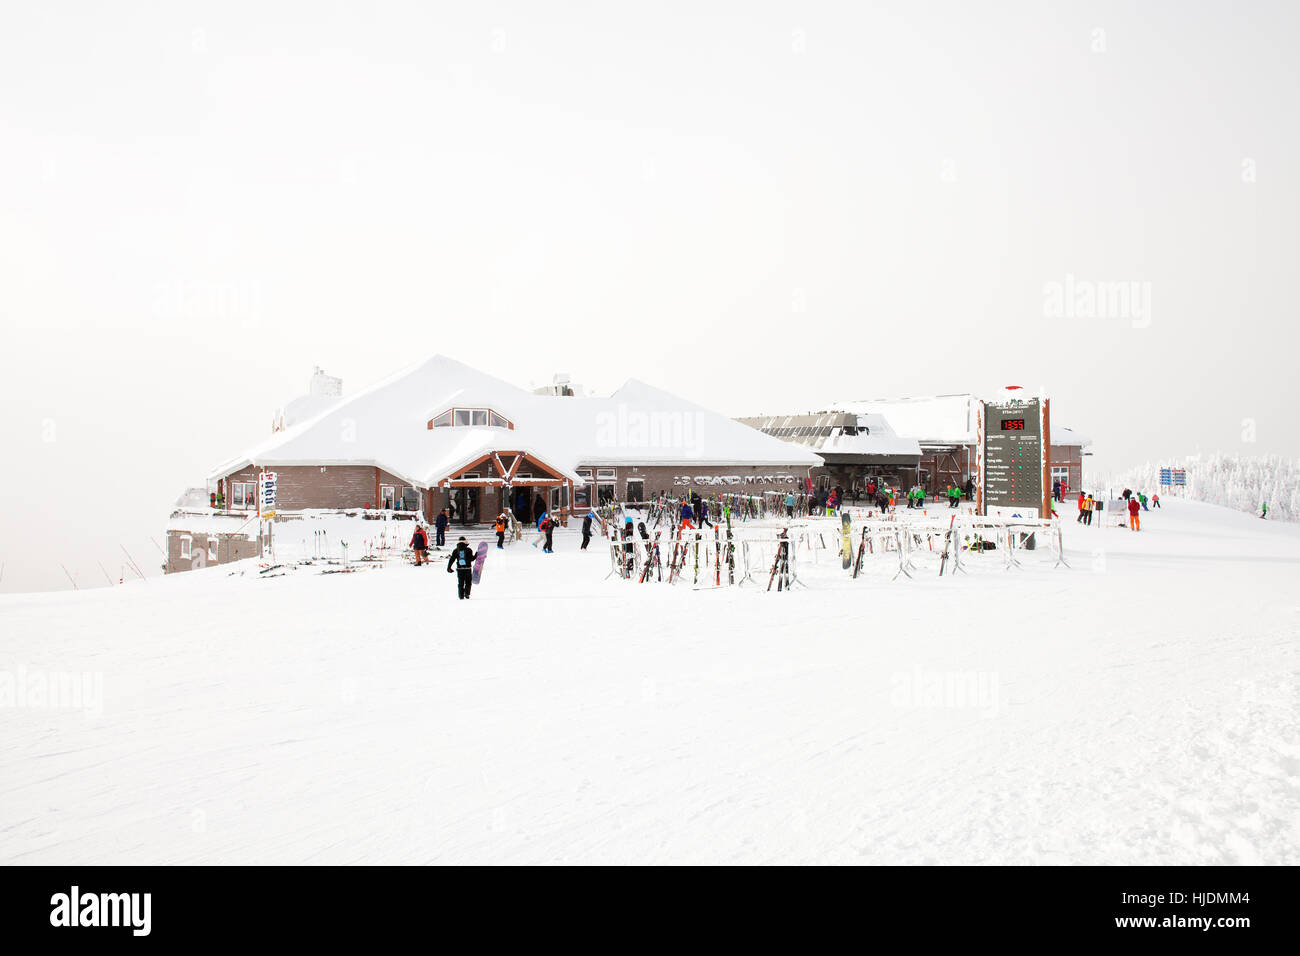 Mont Tremblant Resort in the winter, The Summit - Stock Image